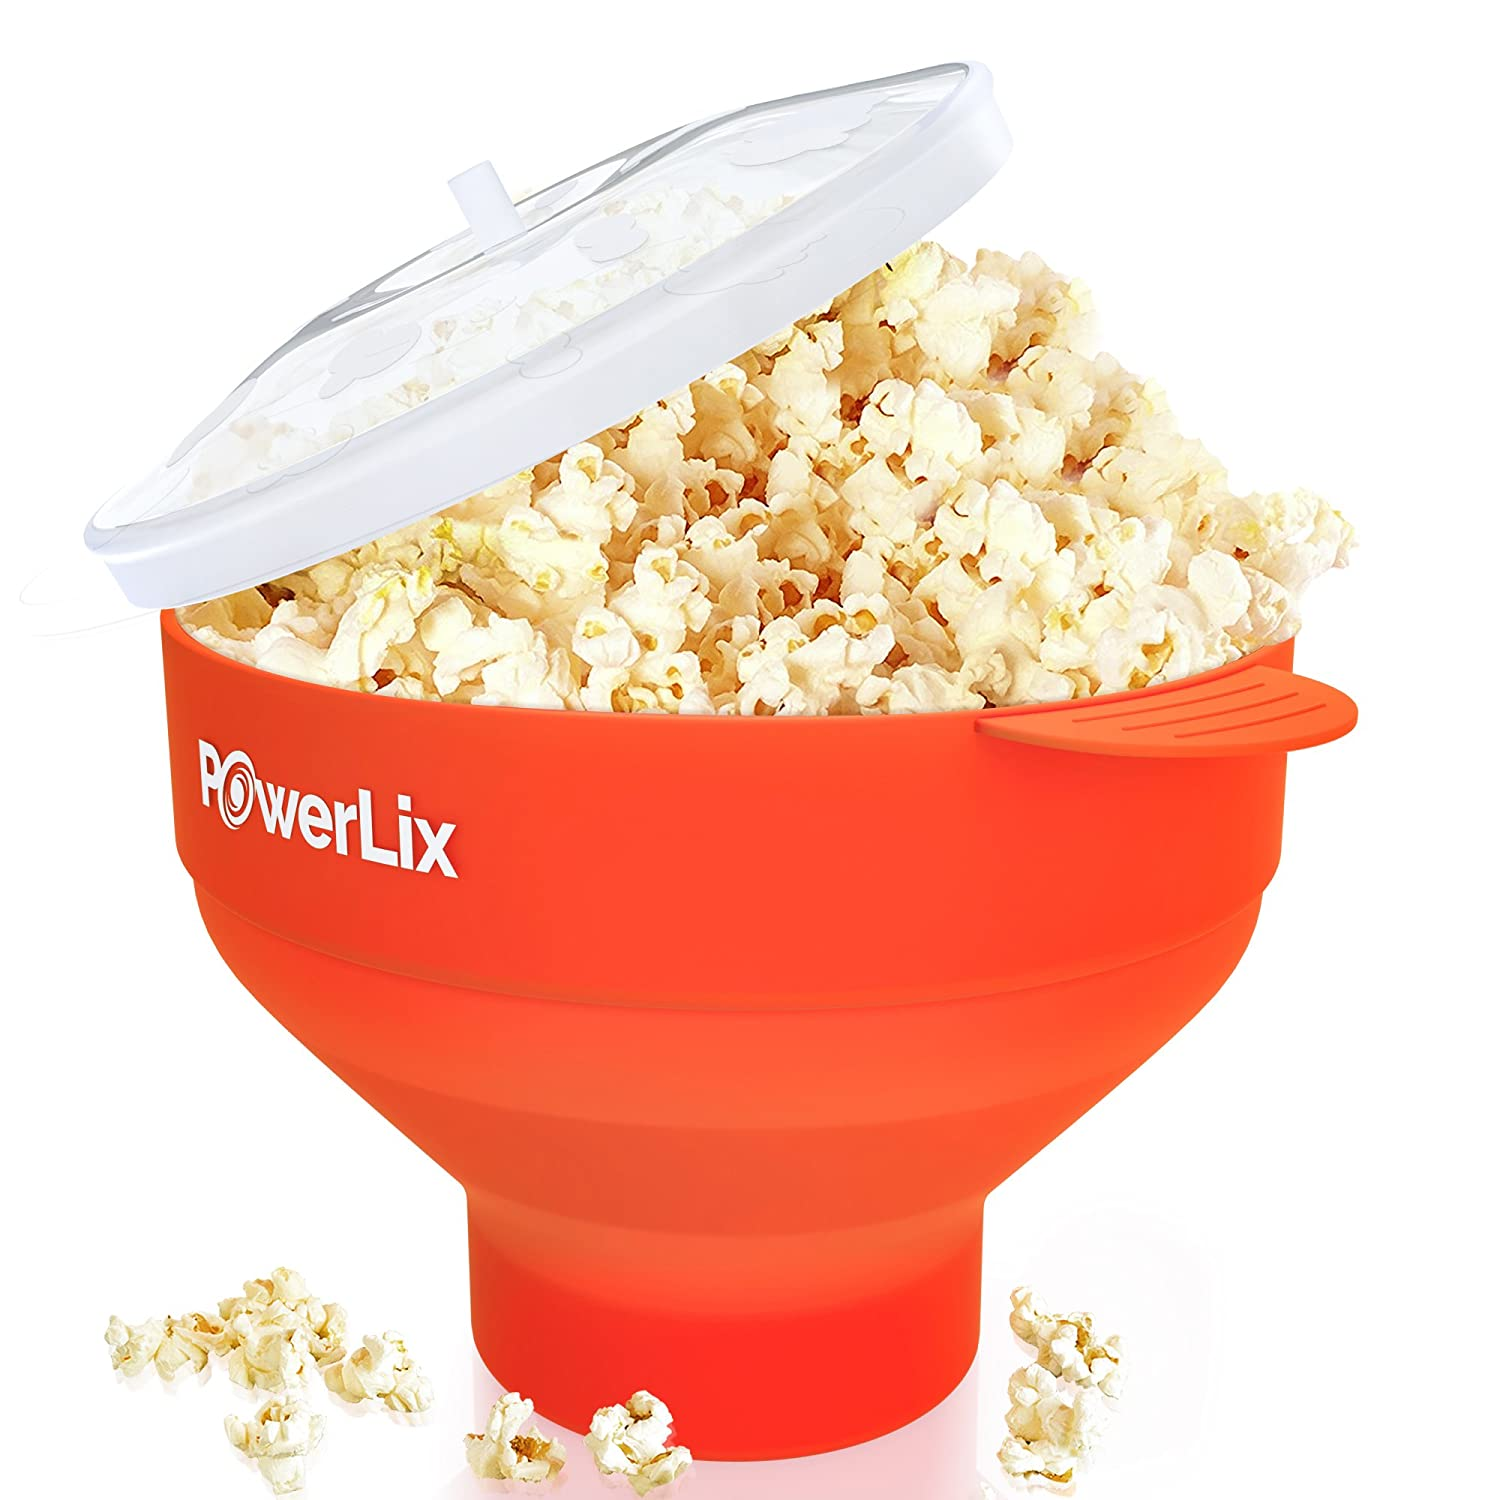 The Original PowerLix Microwave Popcorn Popper, Silicone Popcorn Maker Collapsible Bowl, BPA Free, Hot Air Popcorn Maker - Free e-Book Include (Red)